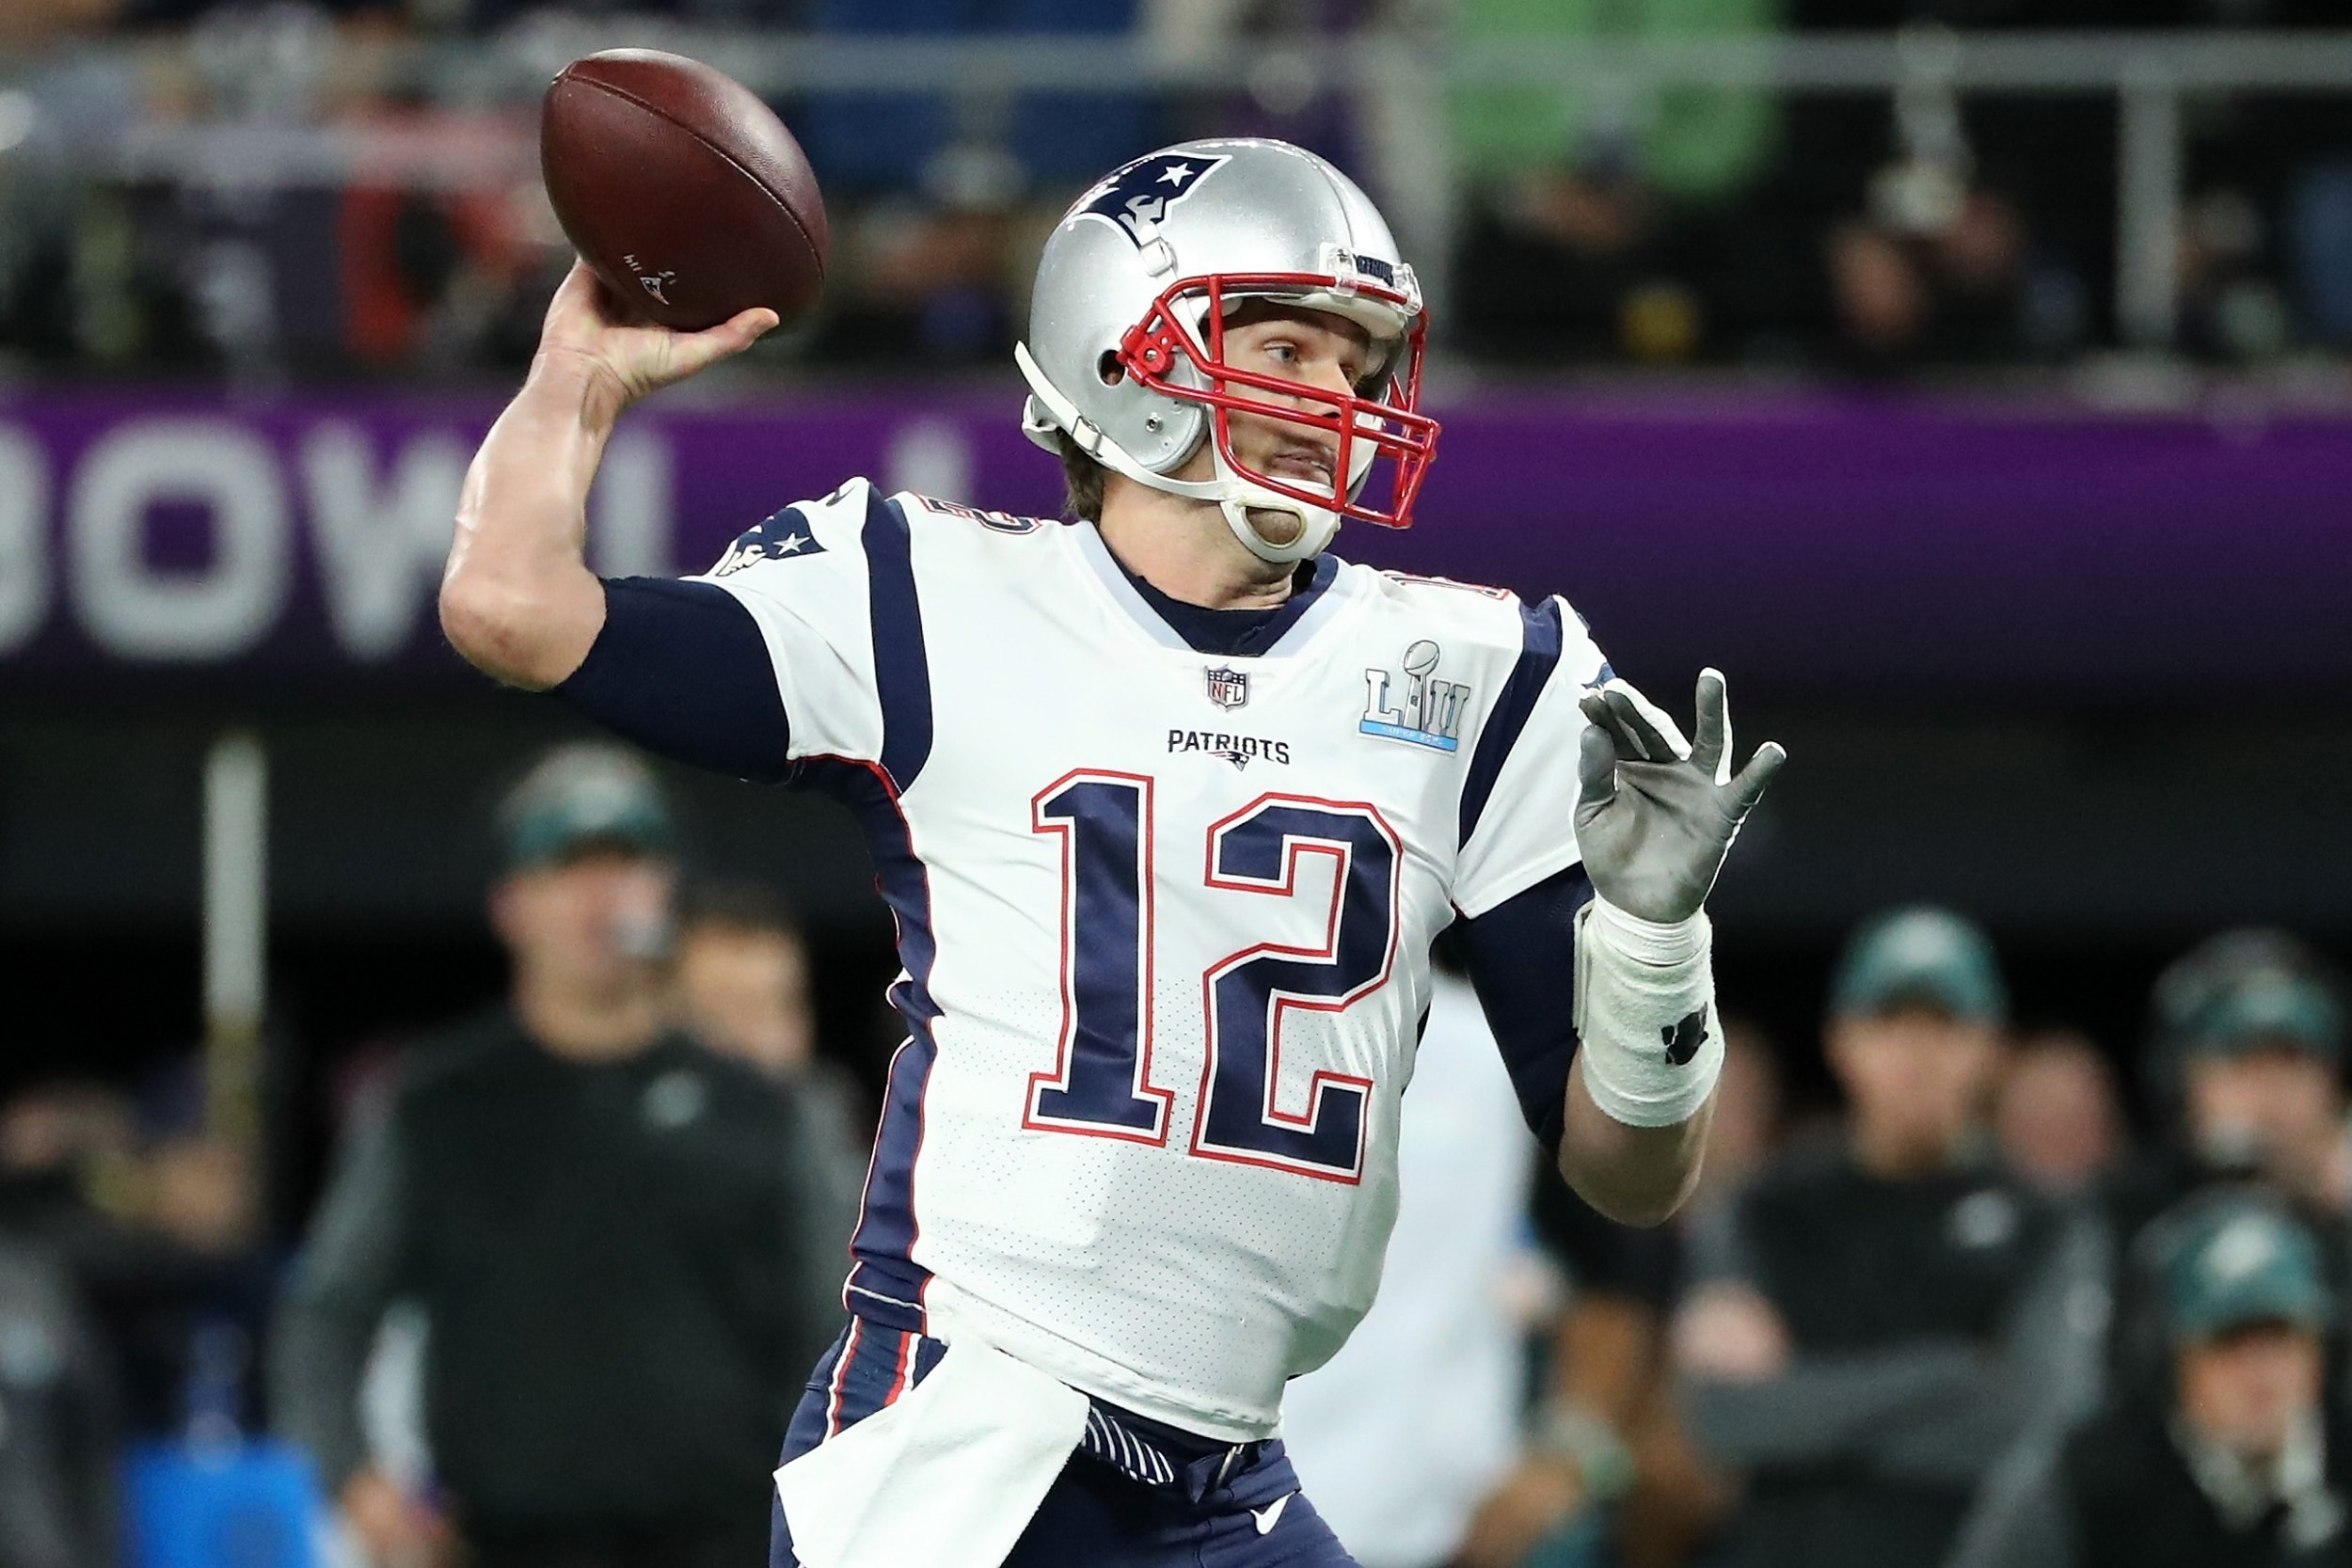 How Many Wins Do Tom Brady And The Patriots Have? Before in Tom Brady Super Bowl